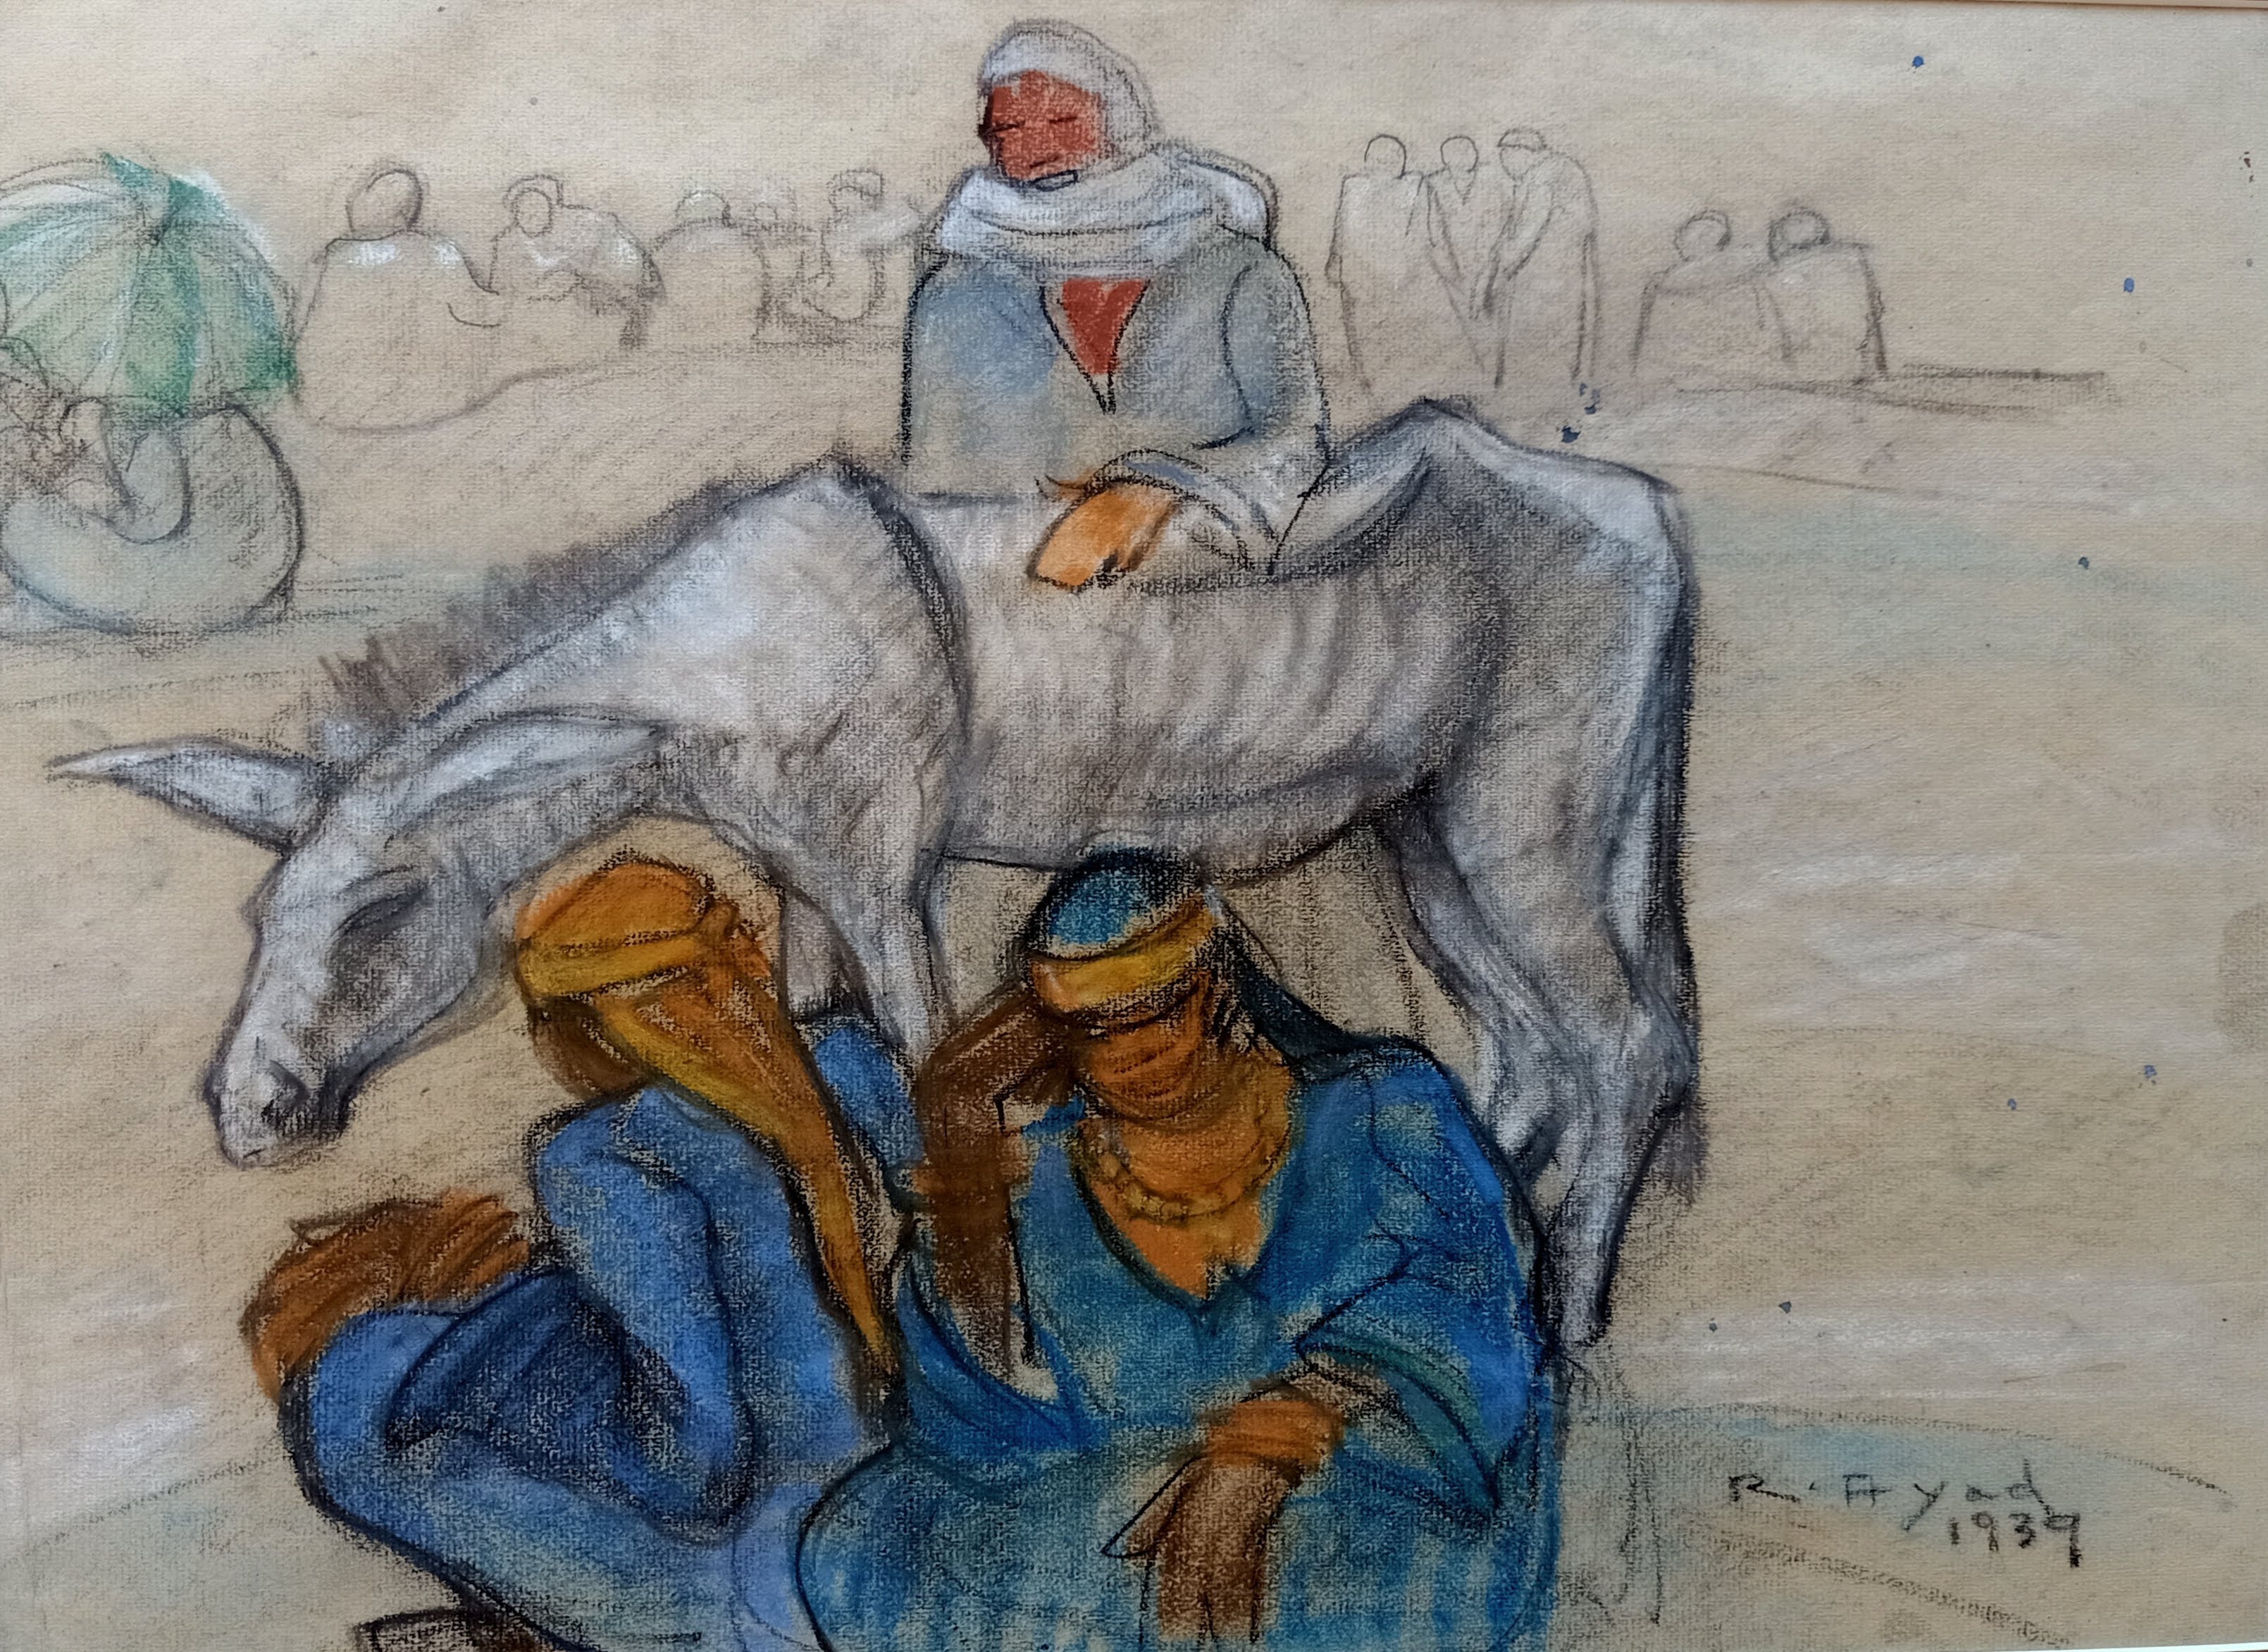 Ragheb Ayad, Bedouin Life, 1939. 30 x 40 cm Mixed media on paper Signed and dated bottom right